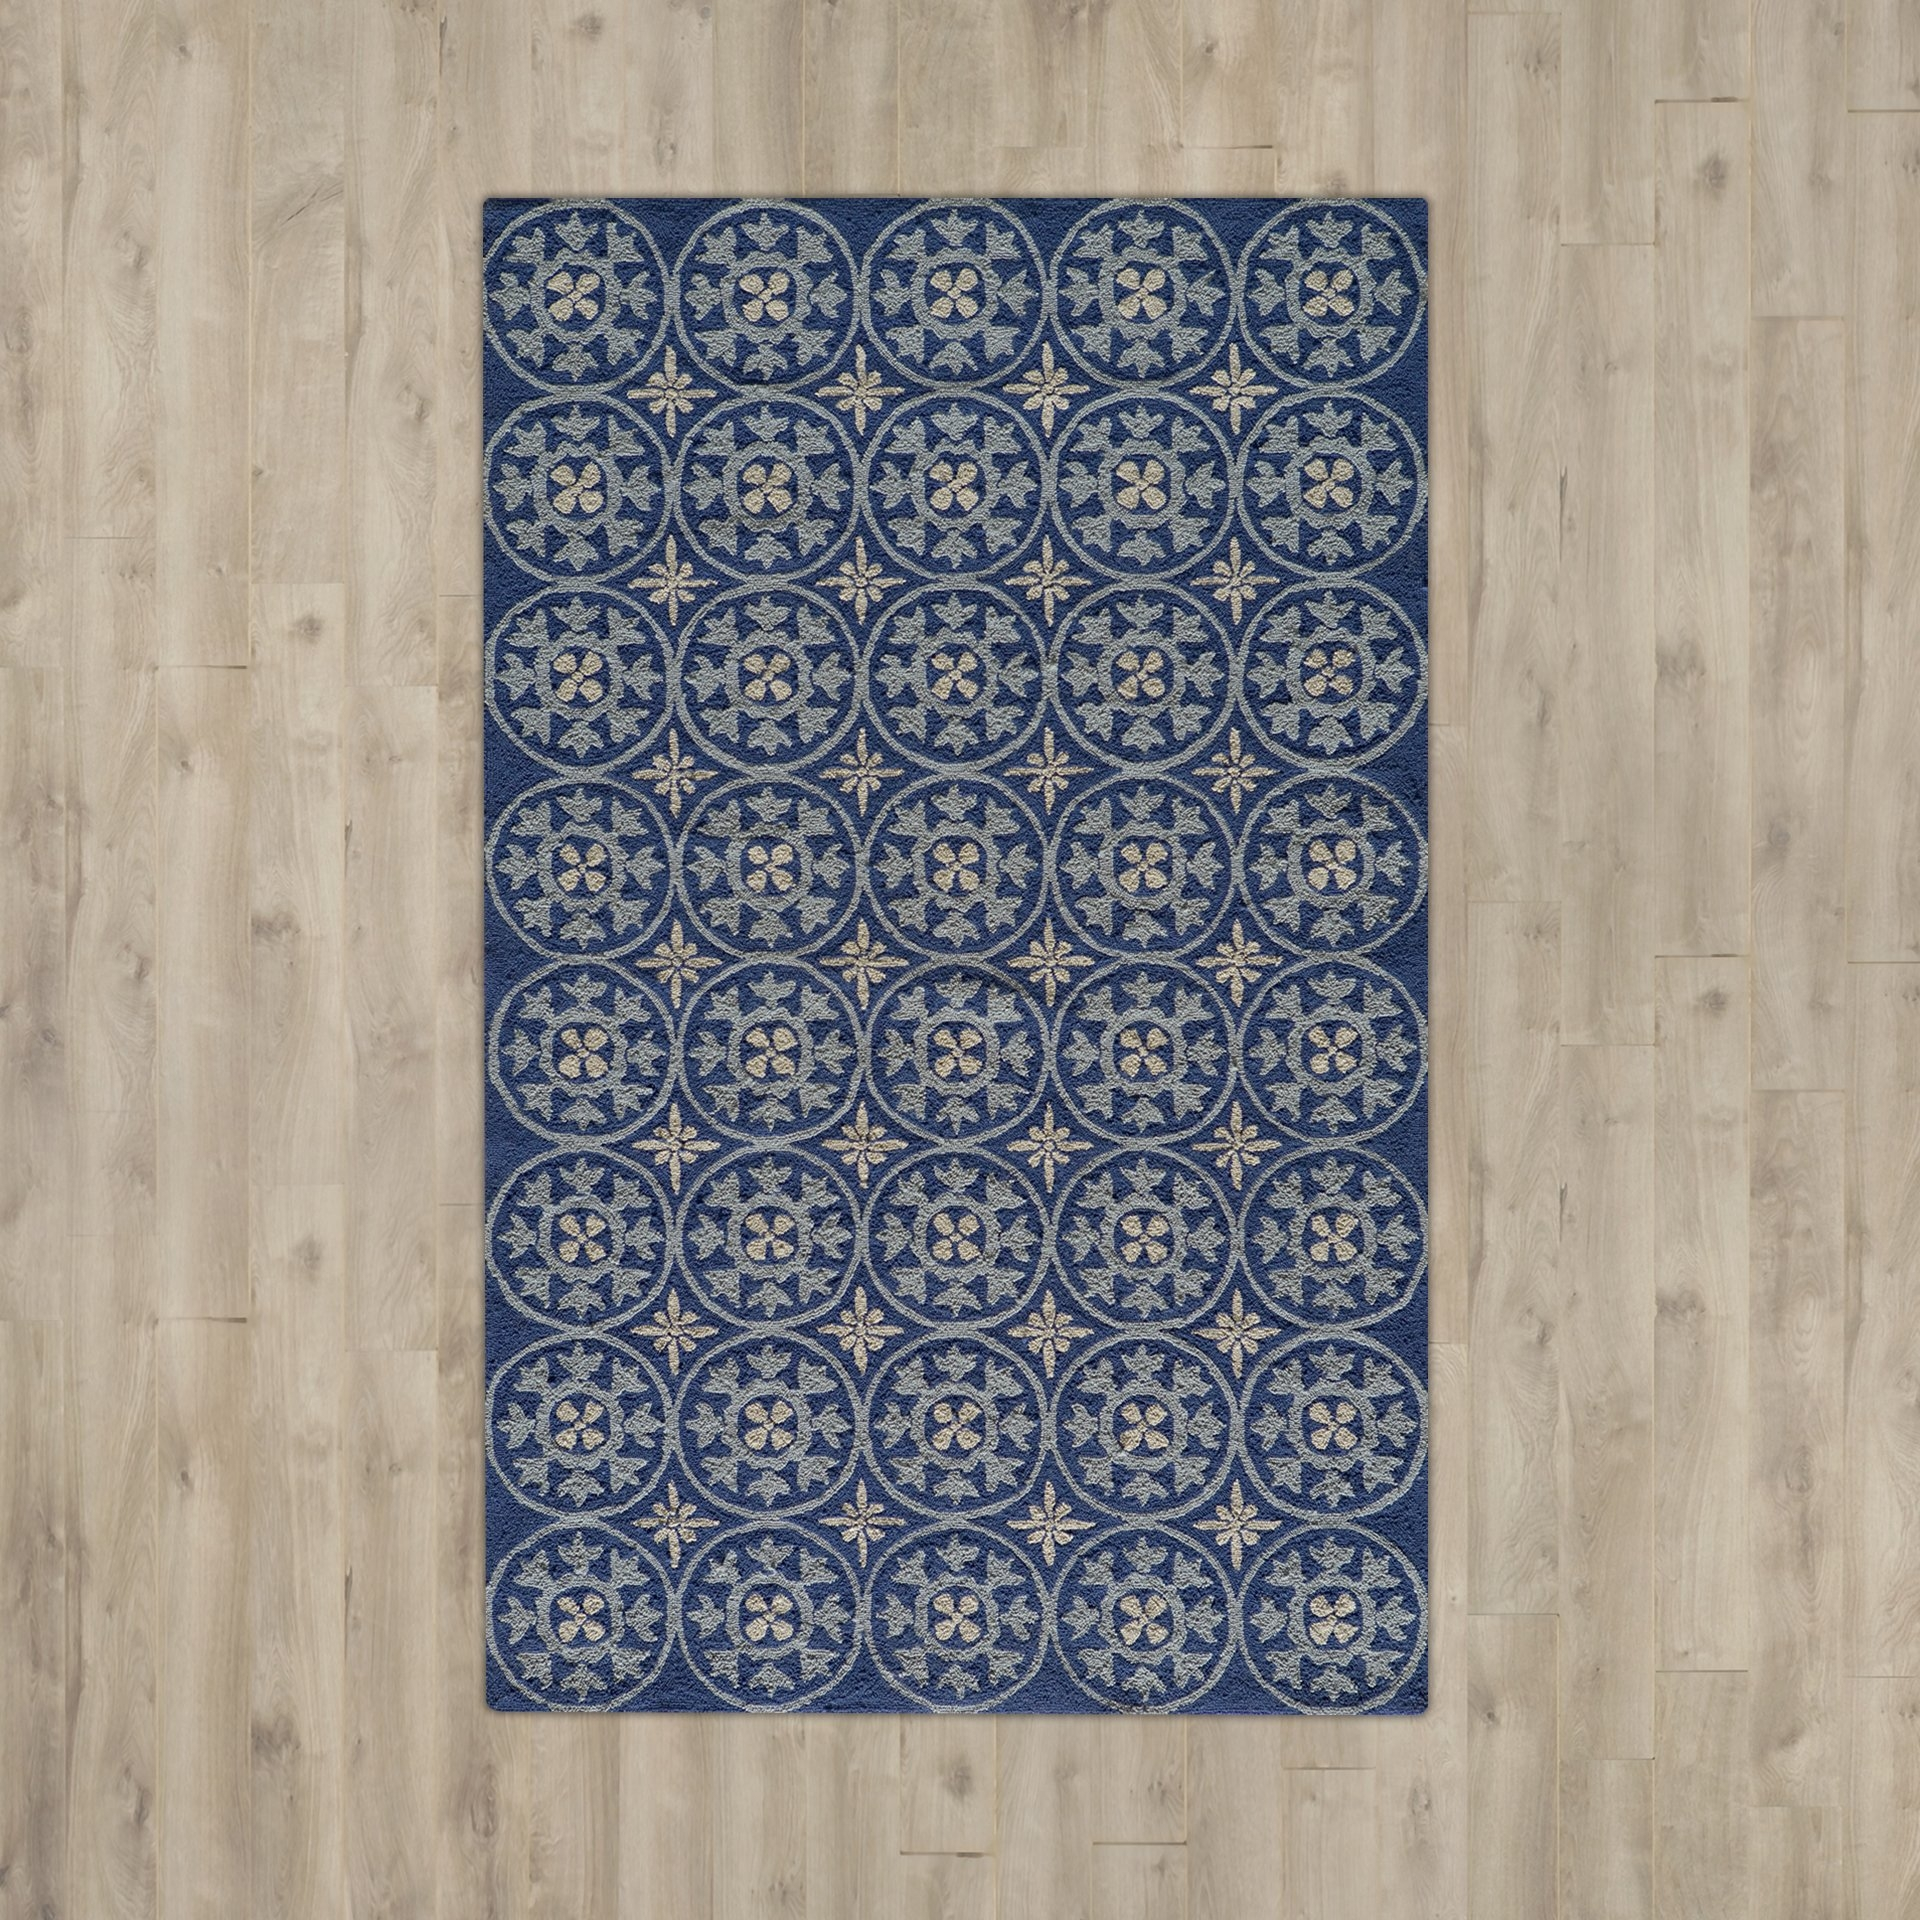 Popular Photo of Hand Hooked Wool Area Rugs